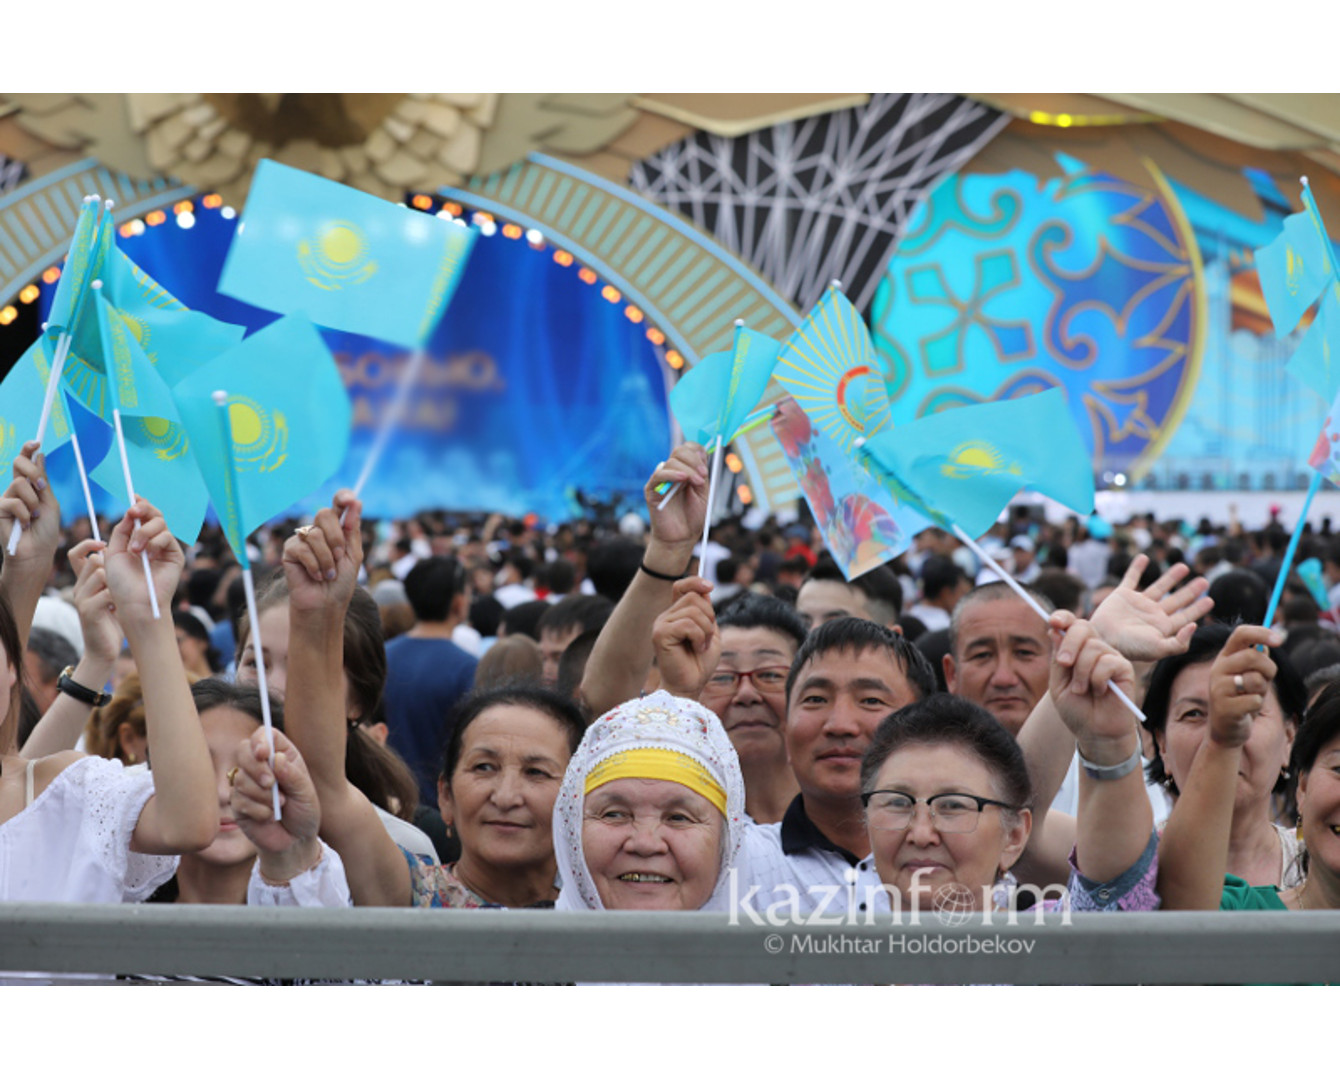 Kazakhstan population exceeds 18.4 million as of Feb 1